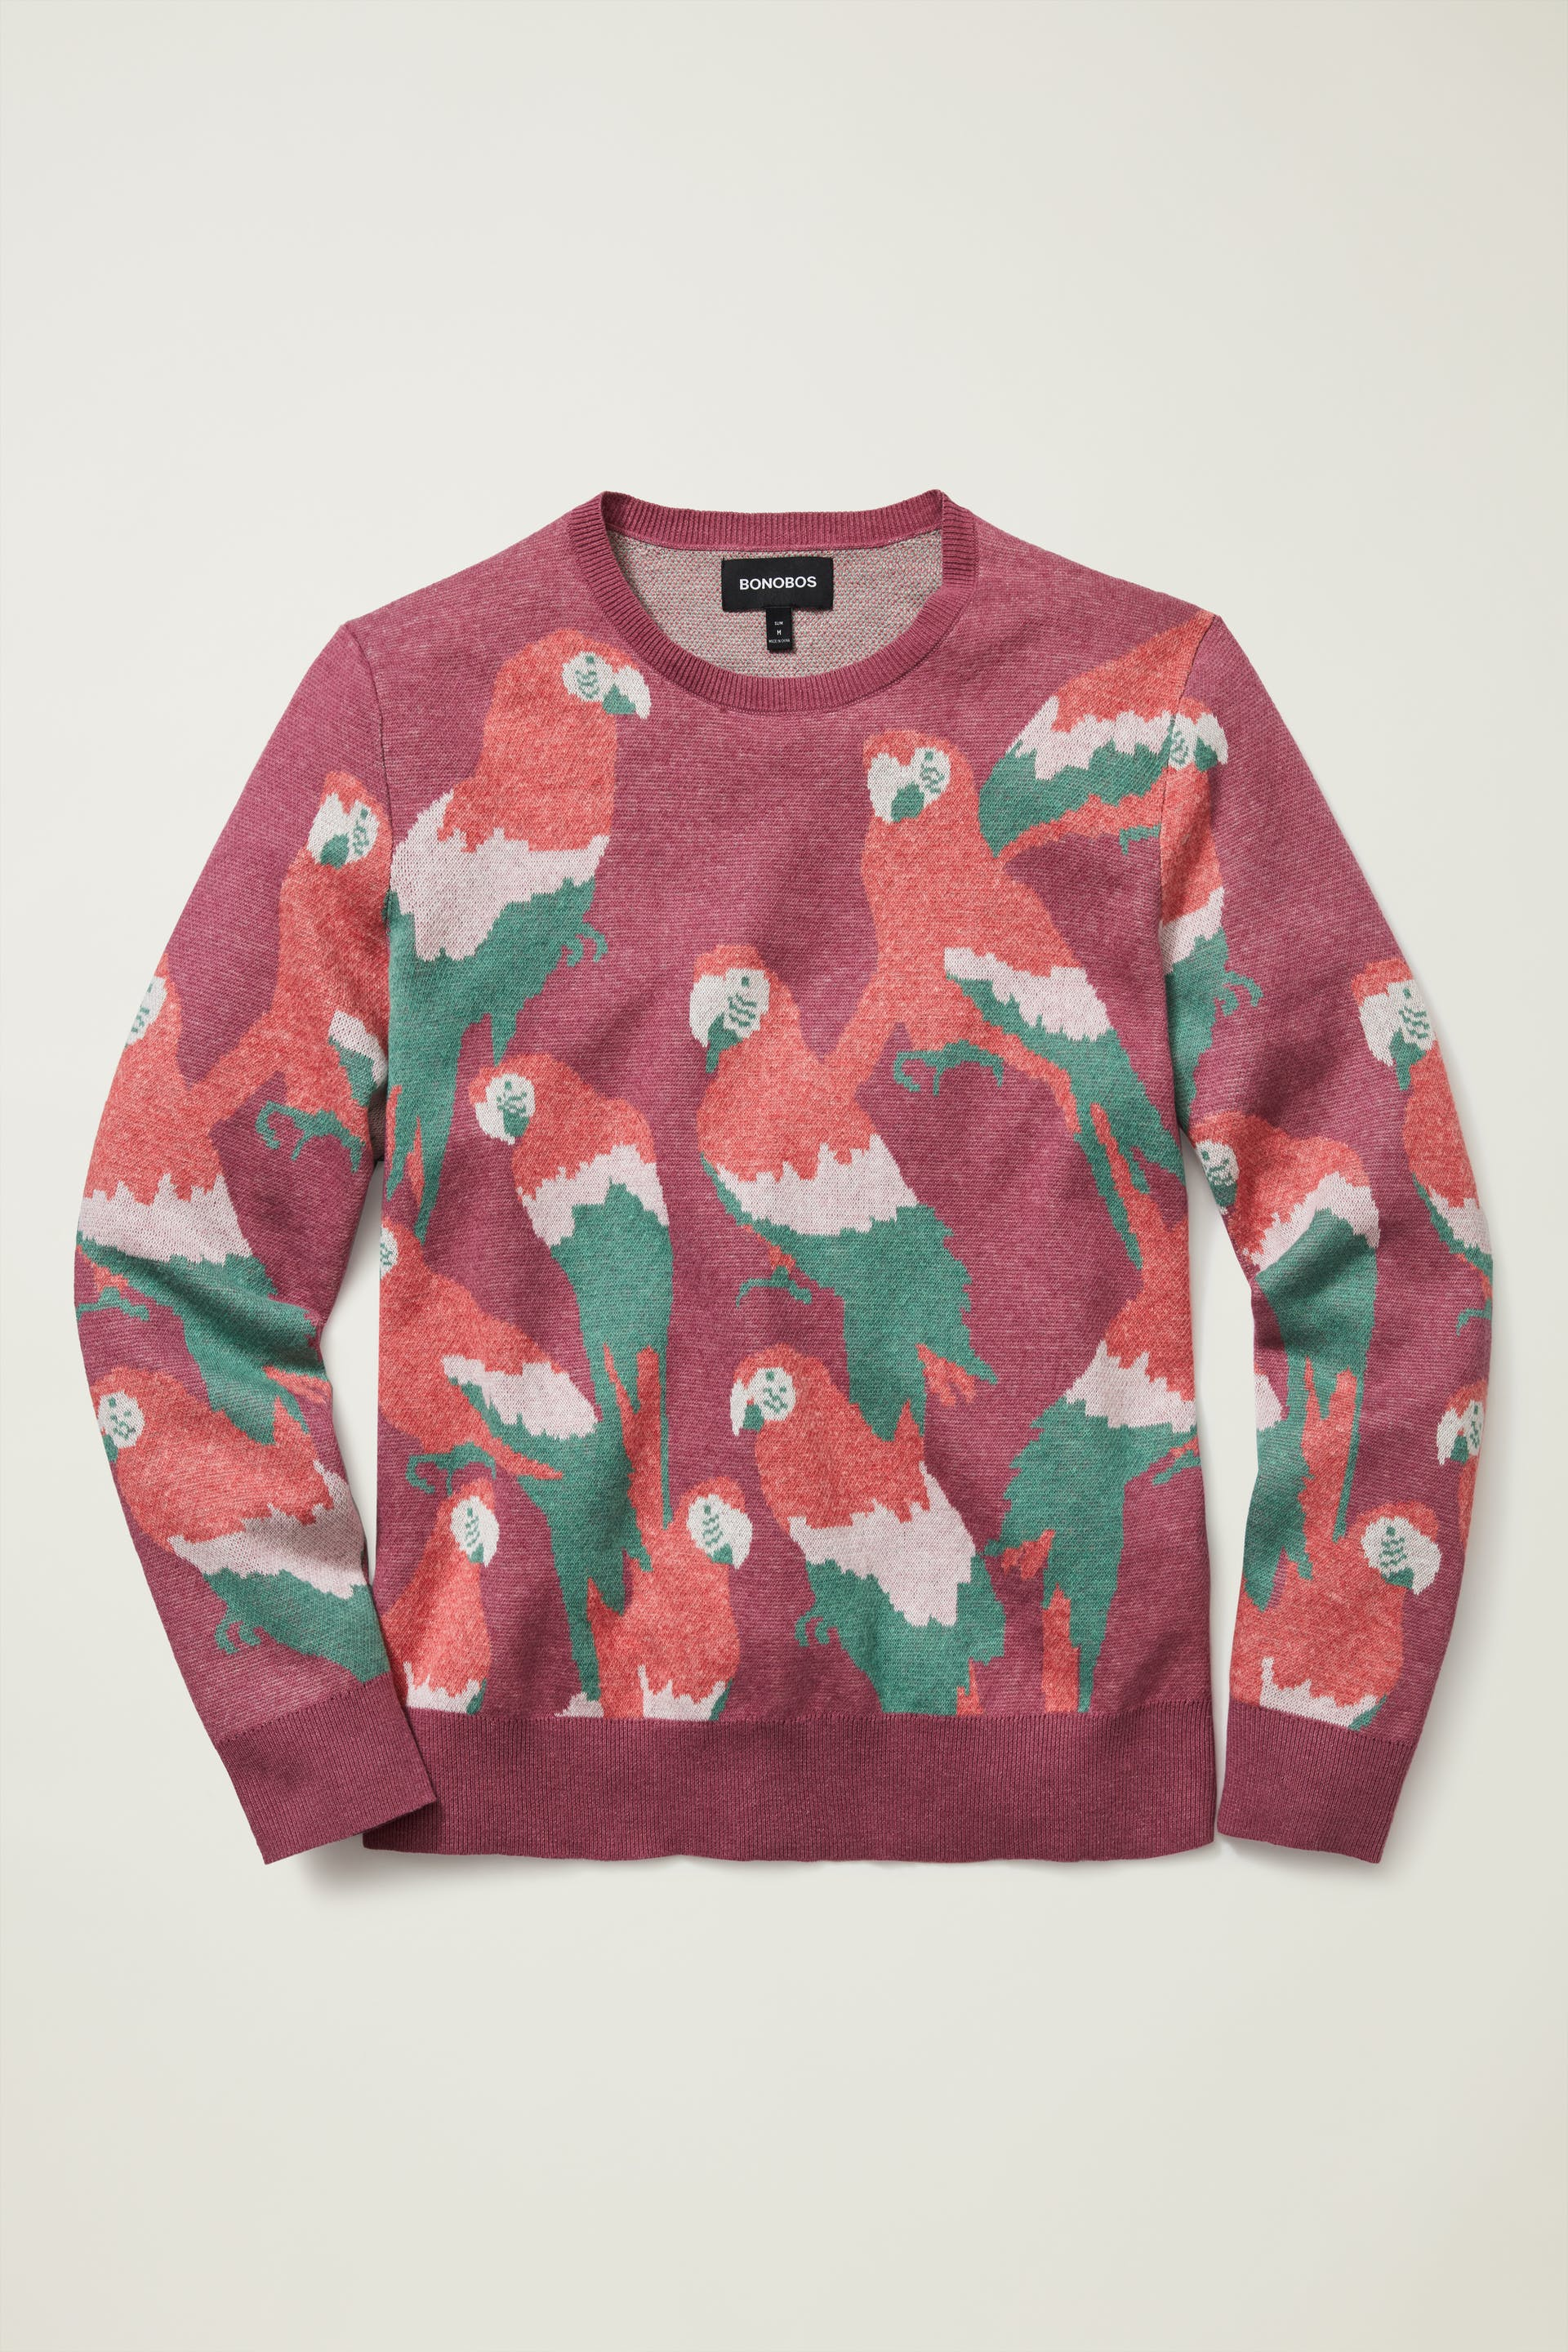 Bonobos Limited Edition Crew Neck Sweater in Pretty Birds, best sweaters